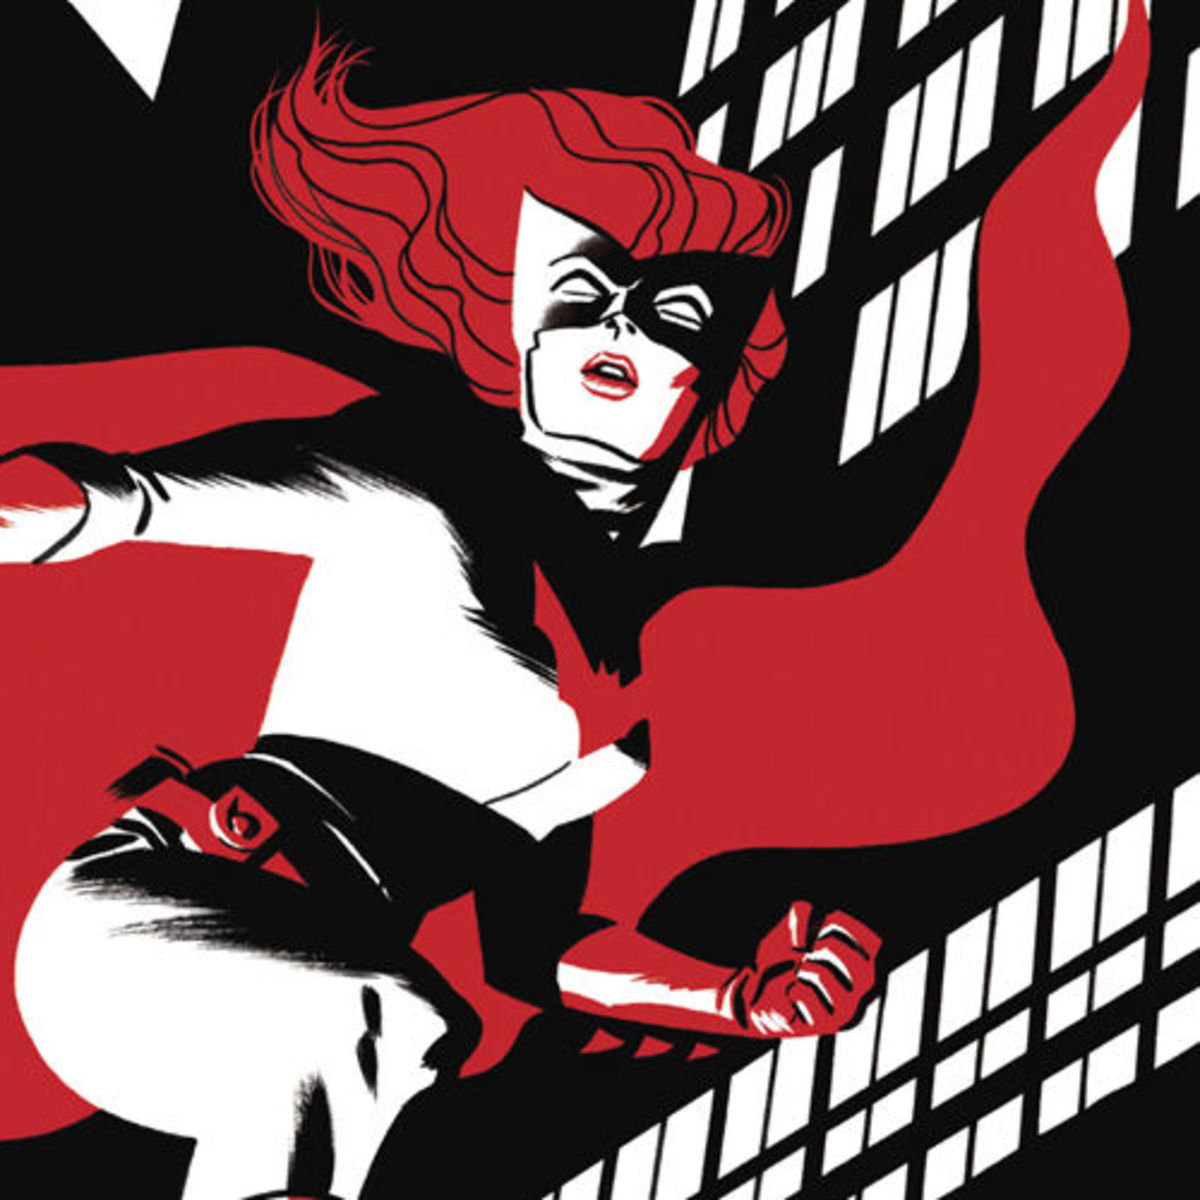 Batwoman Series In the Works | News